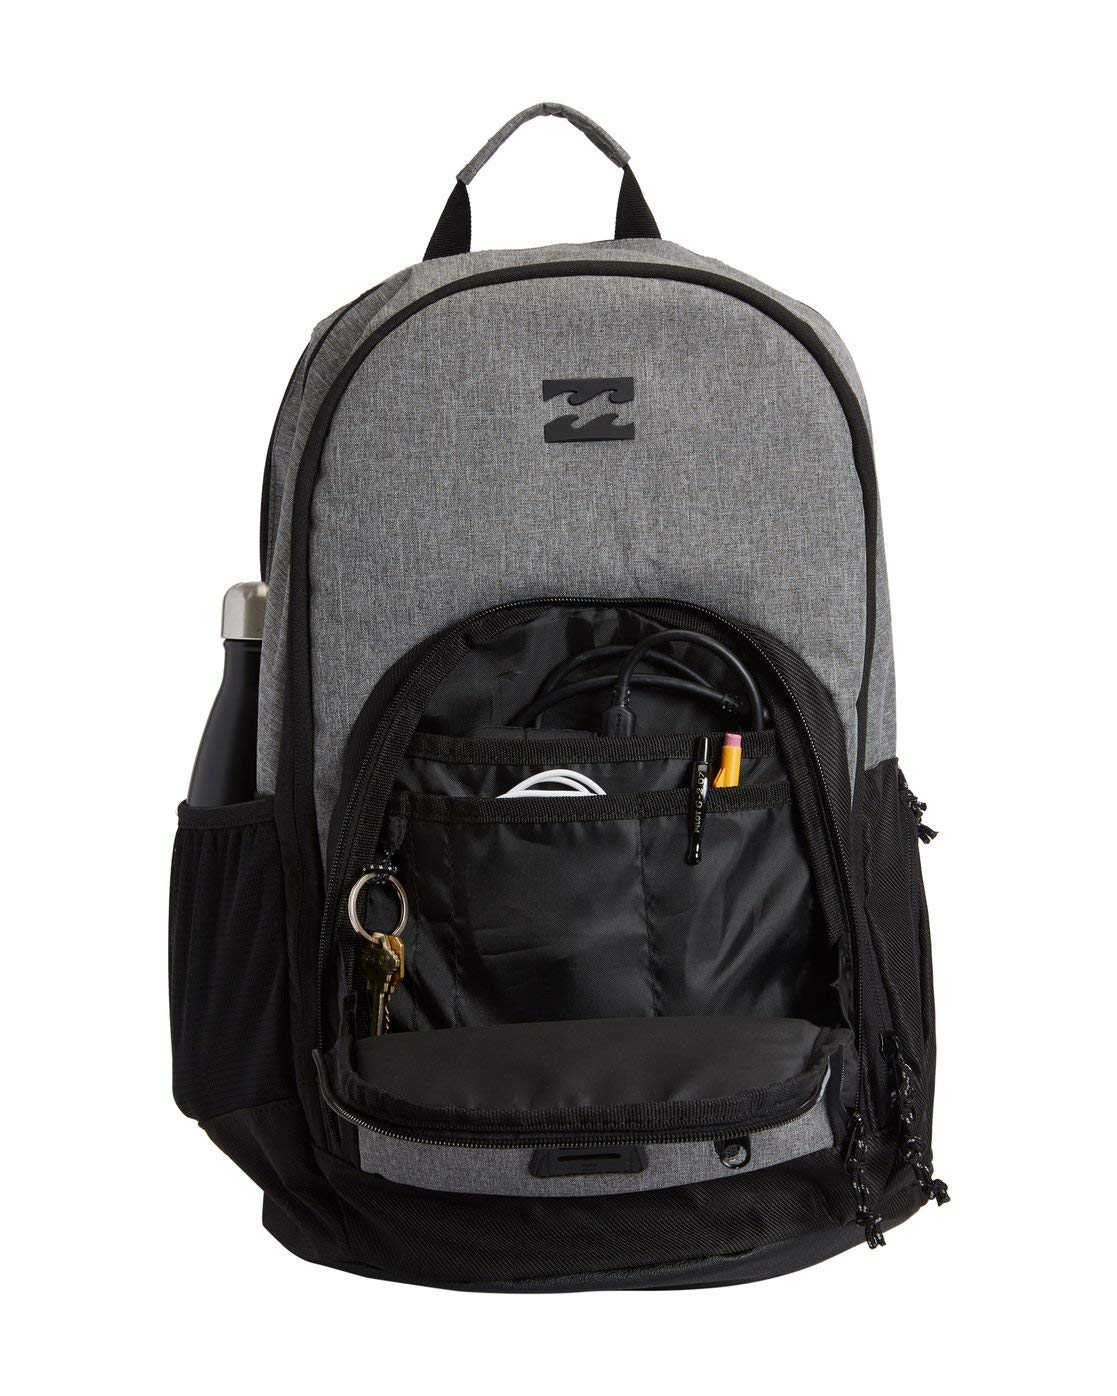 Billabong Men's Classic School Command Backpack, Stealth Black, One Size - yrGear